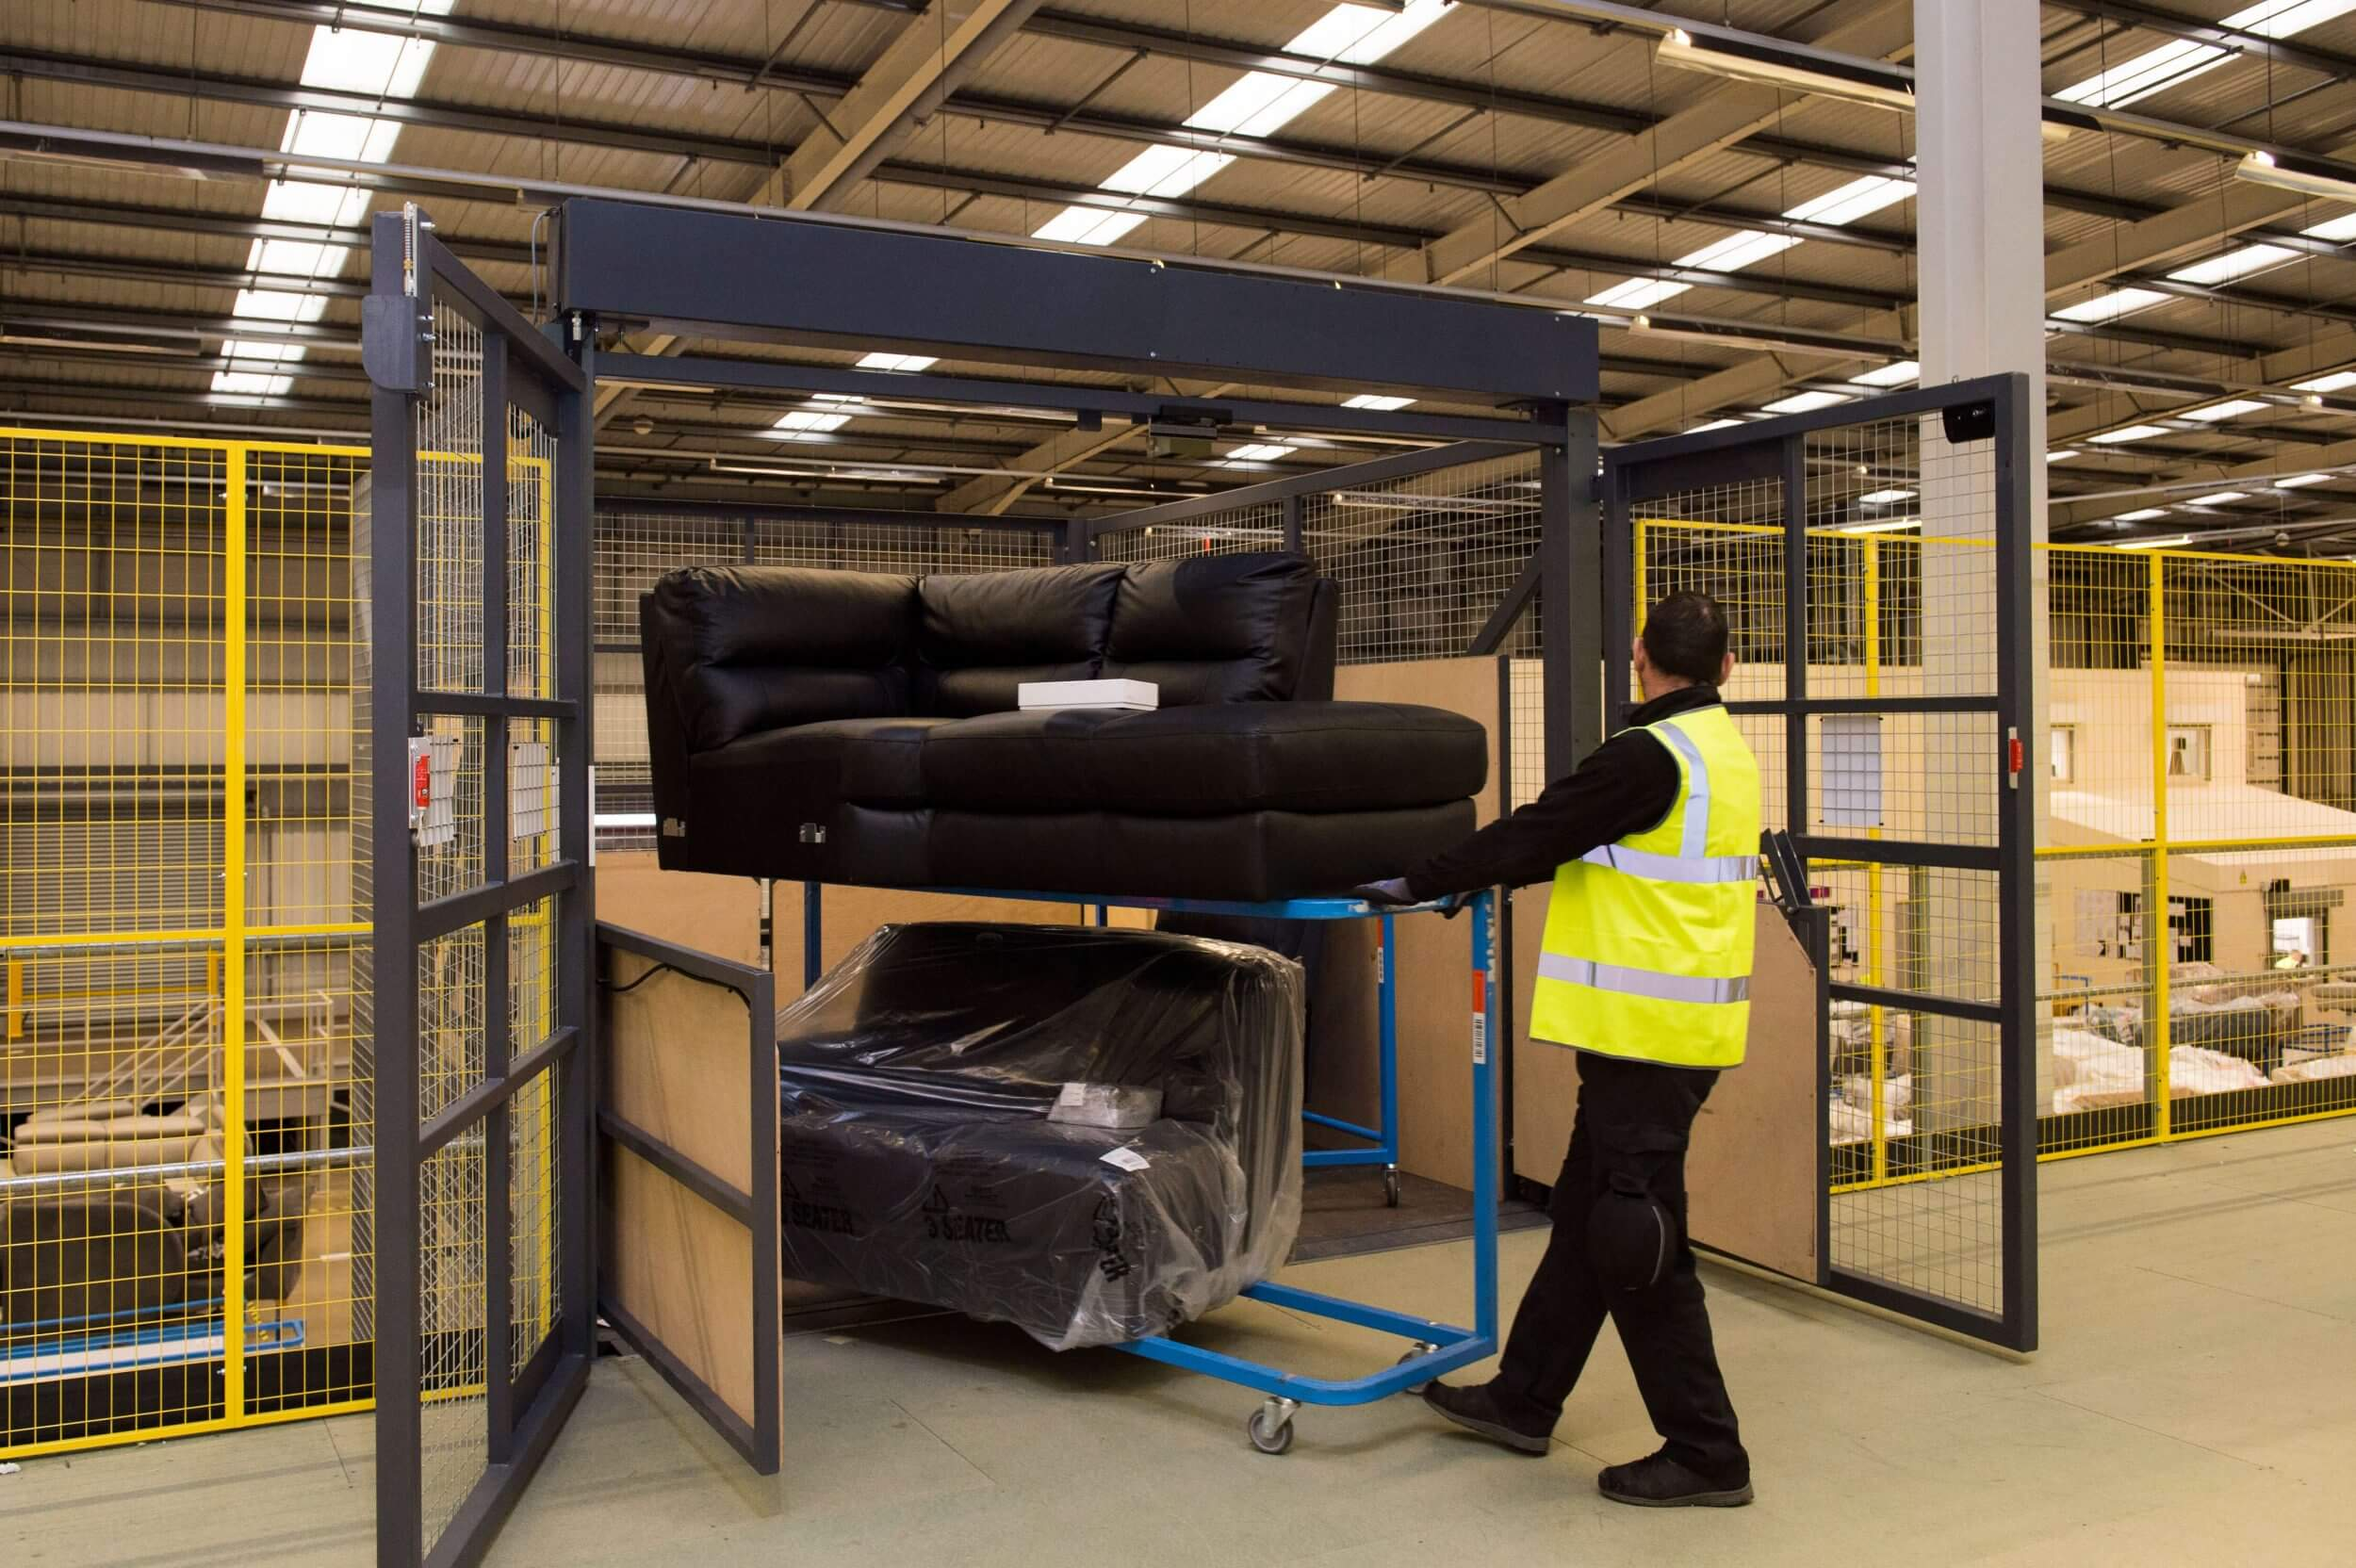 Removing sofas from goods lift